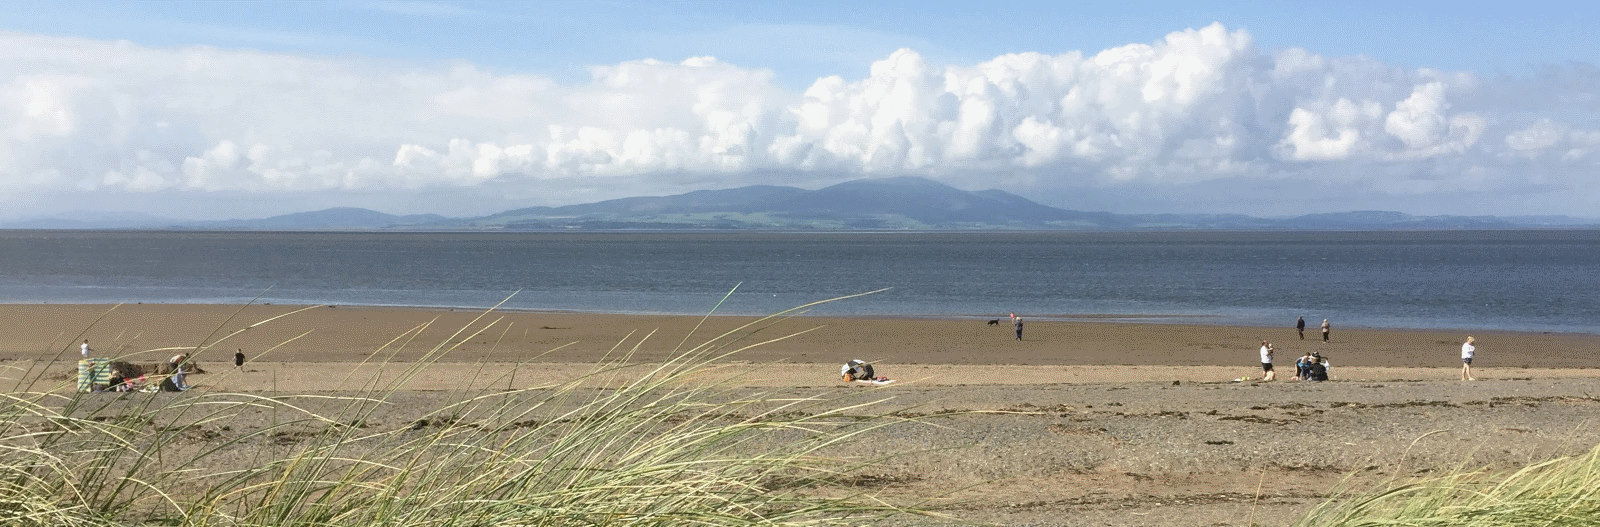 Silloth beach in Cumbria